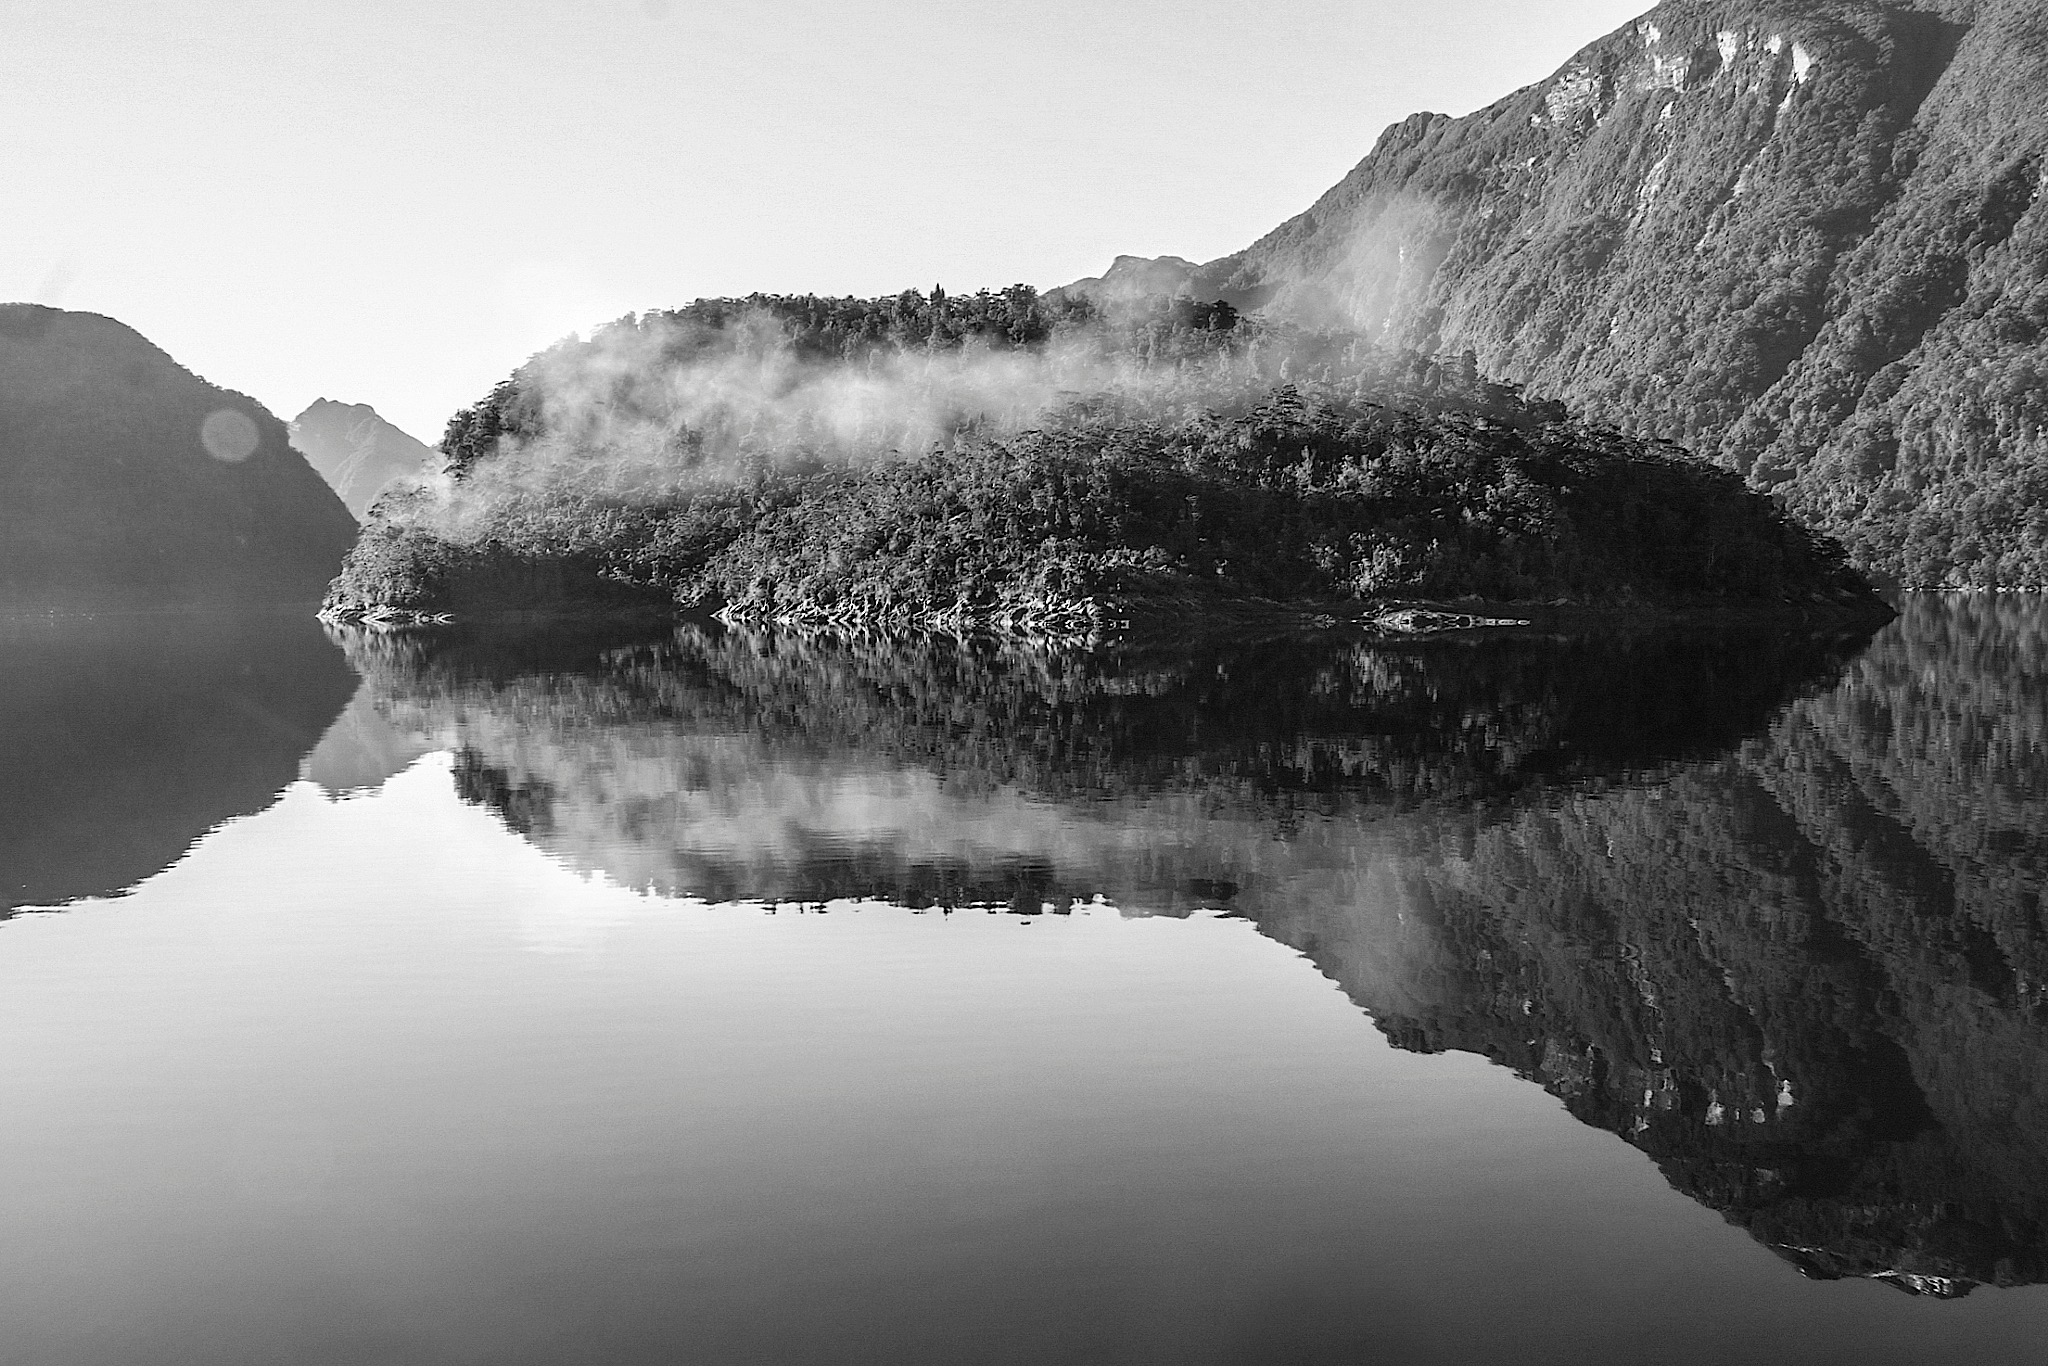 fiordland reflection by sonny_roger_sonneland